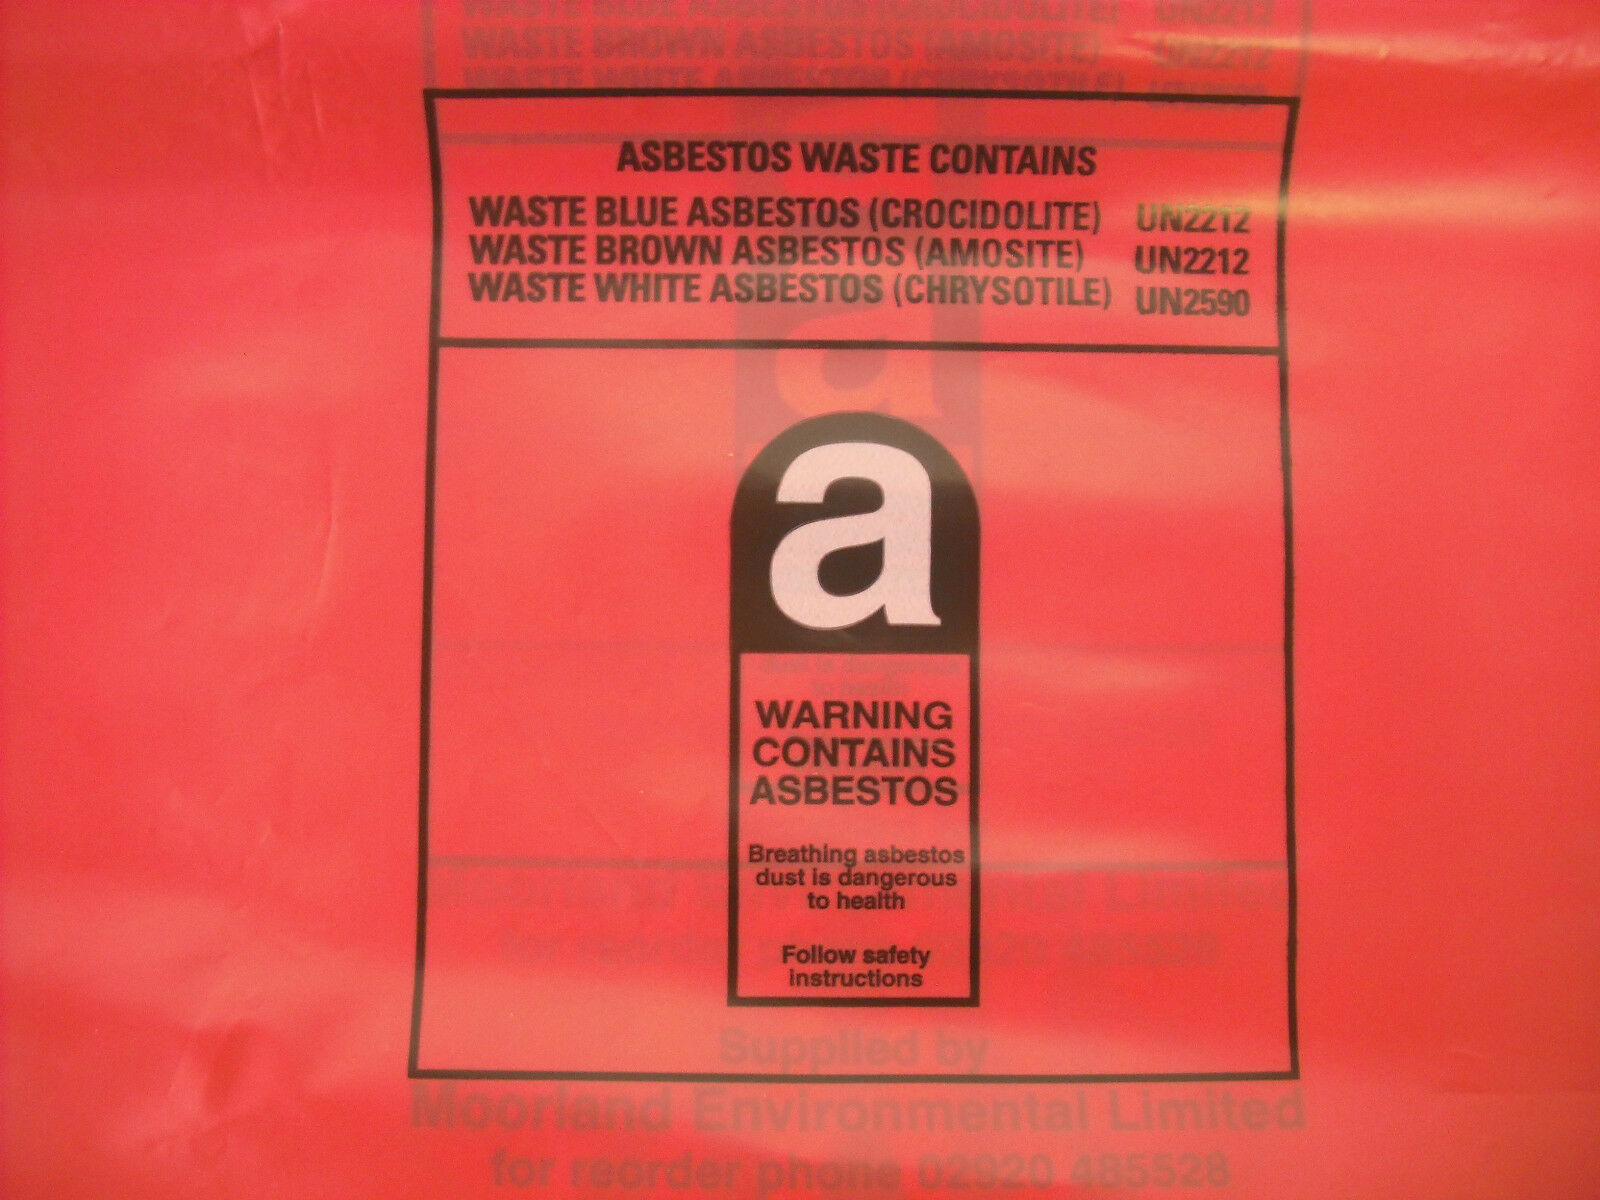 x 900mm quantity 100 in clear or red s l1600 asbestos bags 1200mm x 900mm quantity 100 in clear or red p 5322html asbestos surveyor cover letter breath